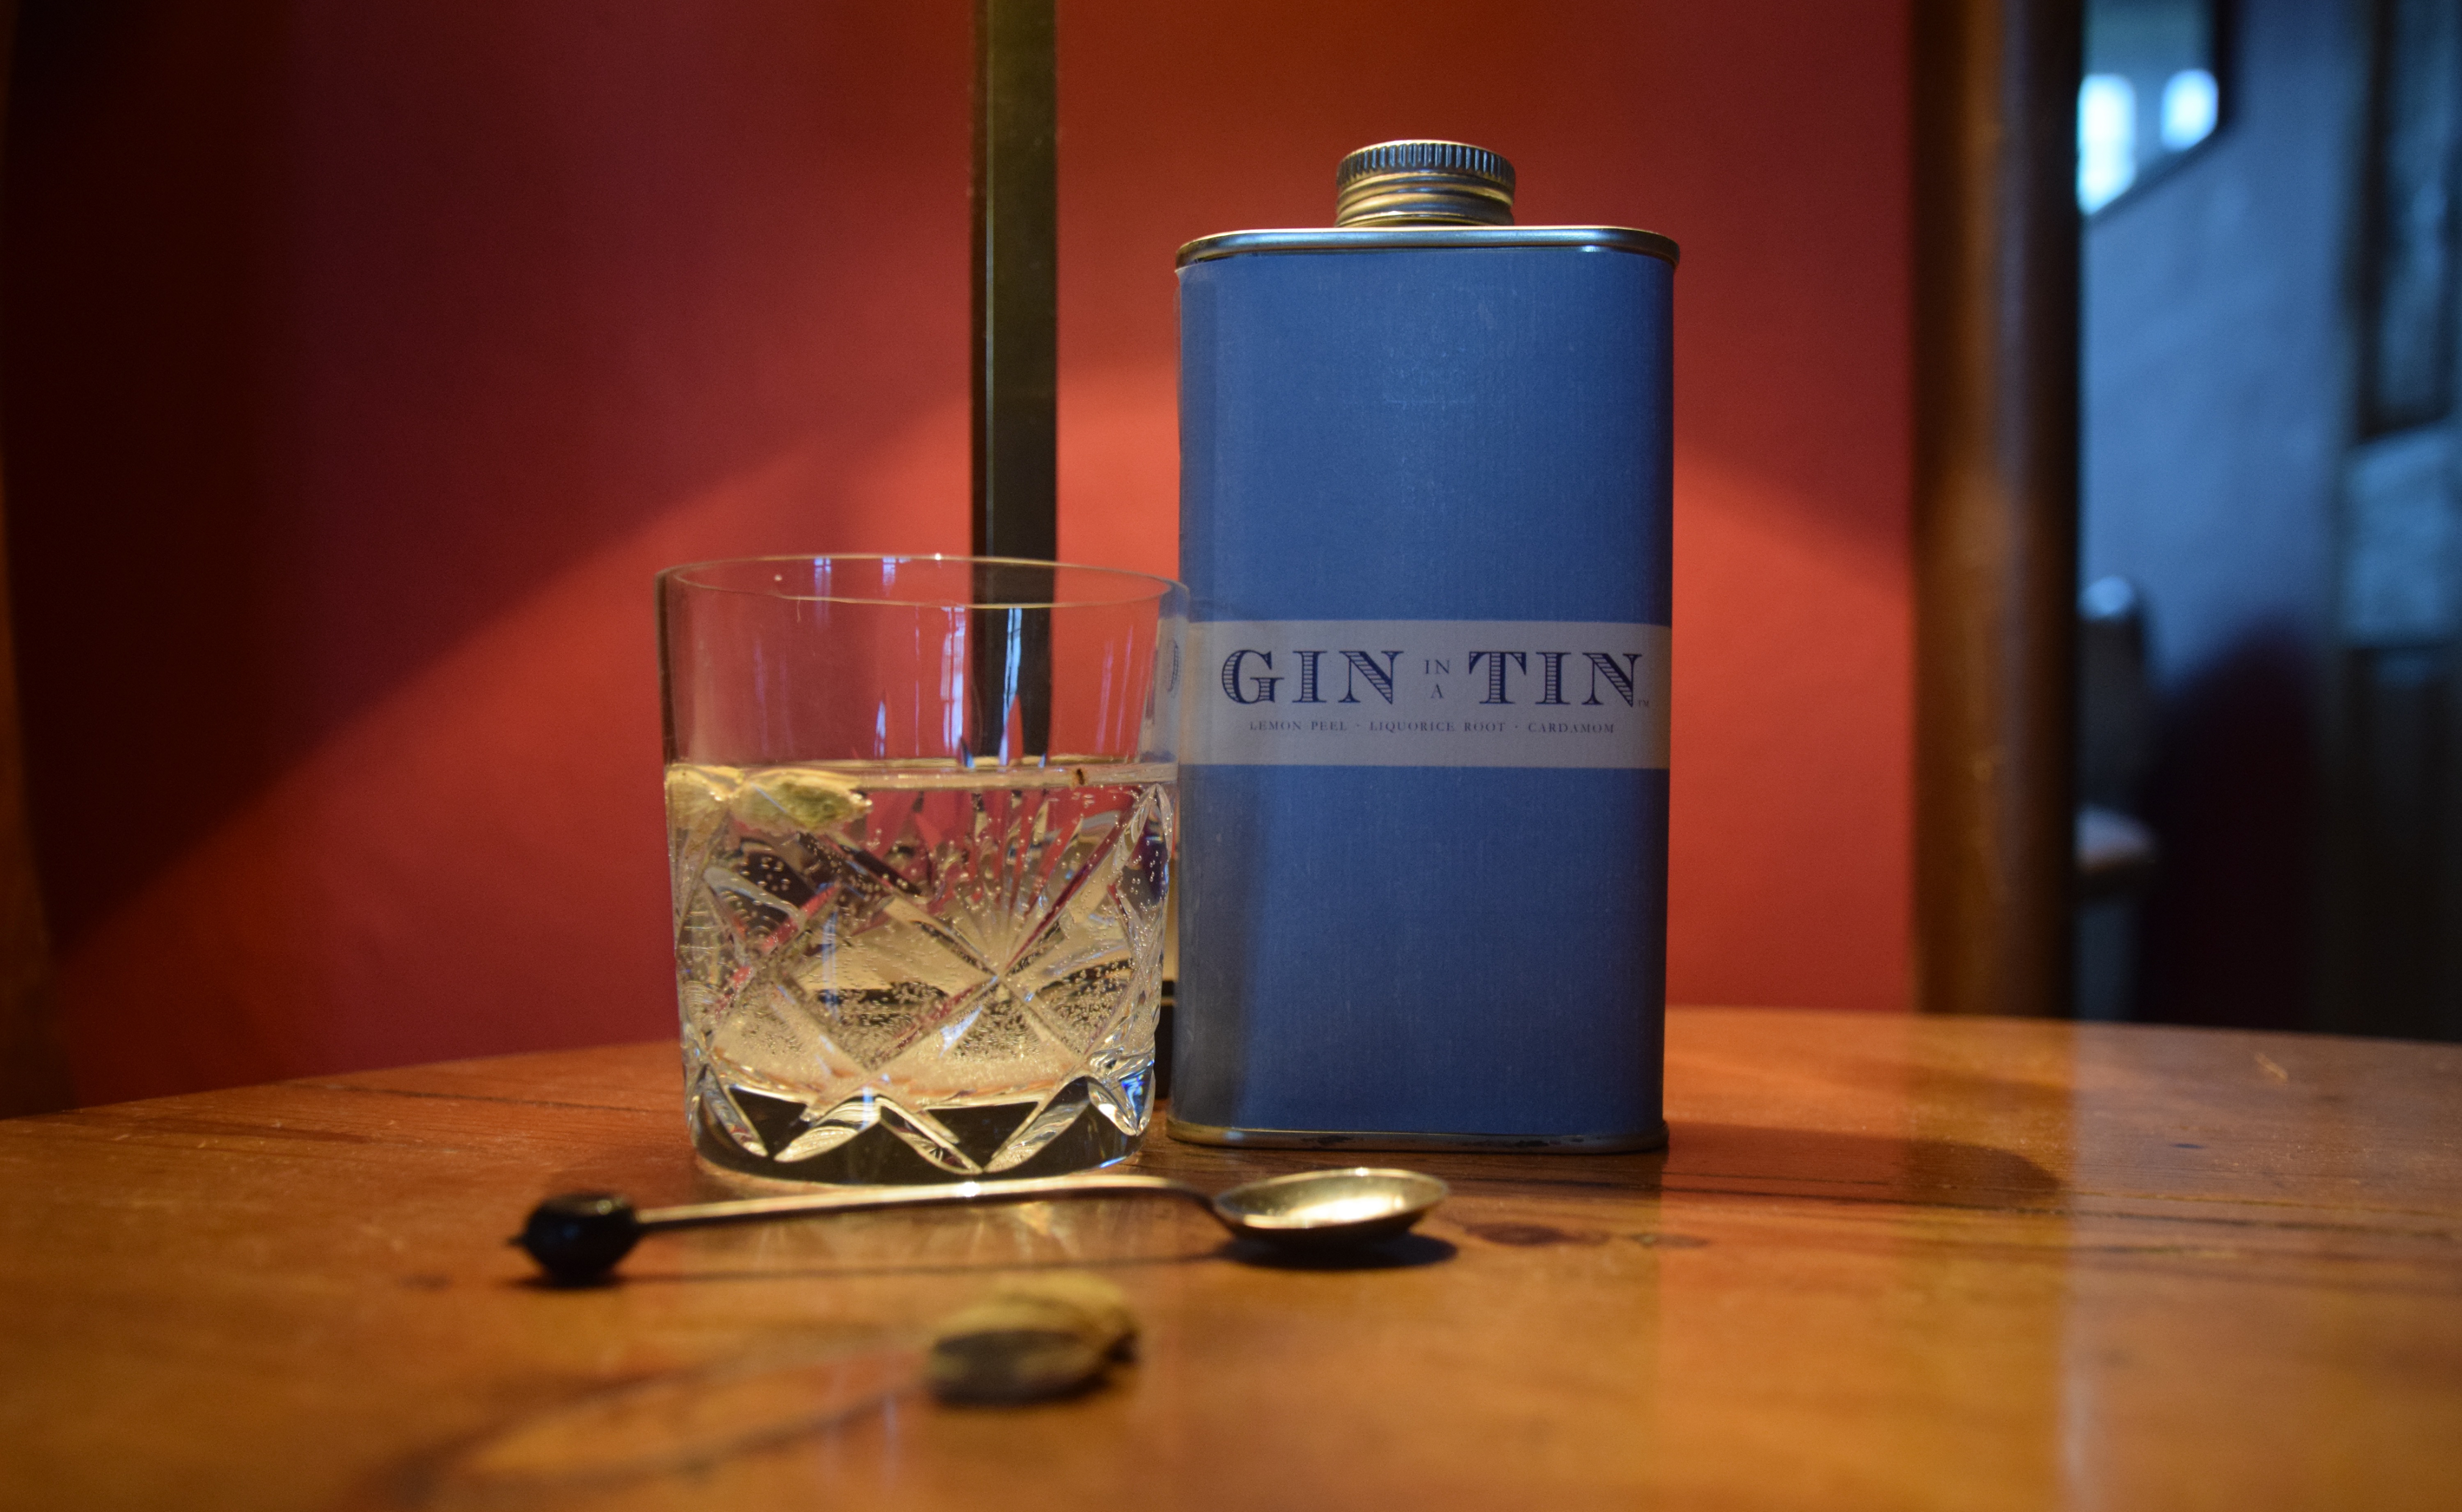 GIN IN A TIN - LEMON PEEL, CORIANDER & CARDAMOM NO.2